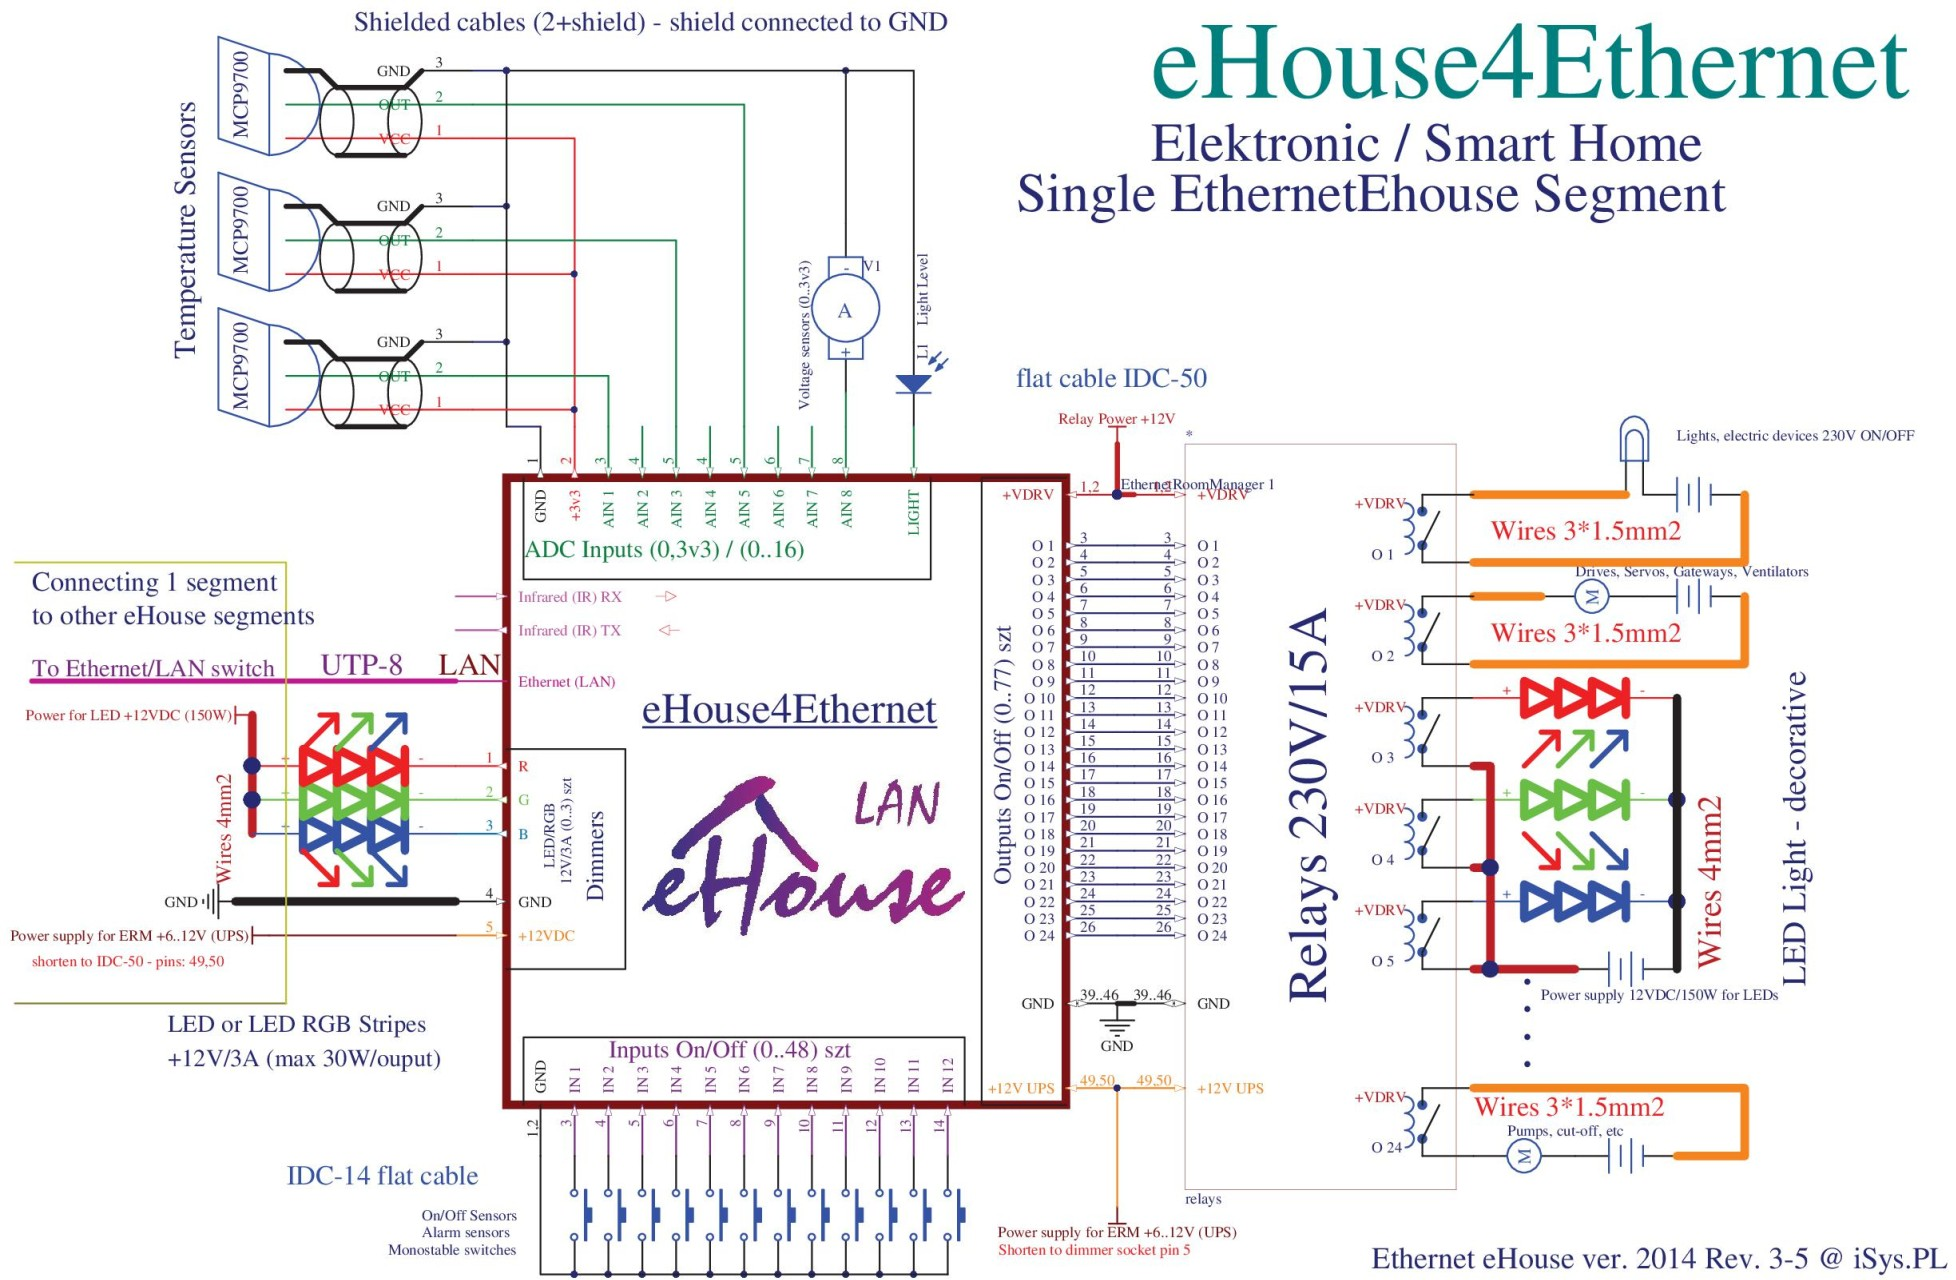 eHouse Ethernet intelligent home connection